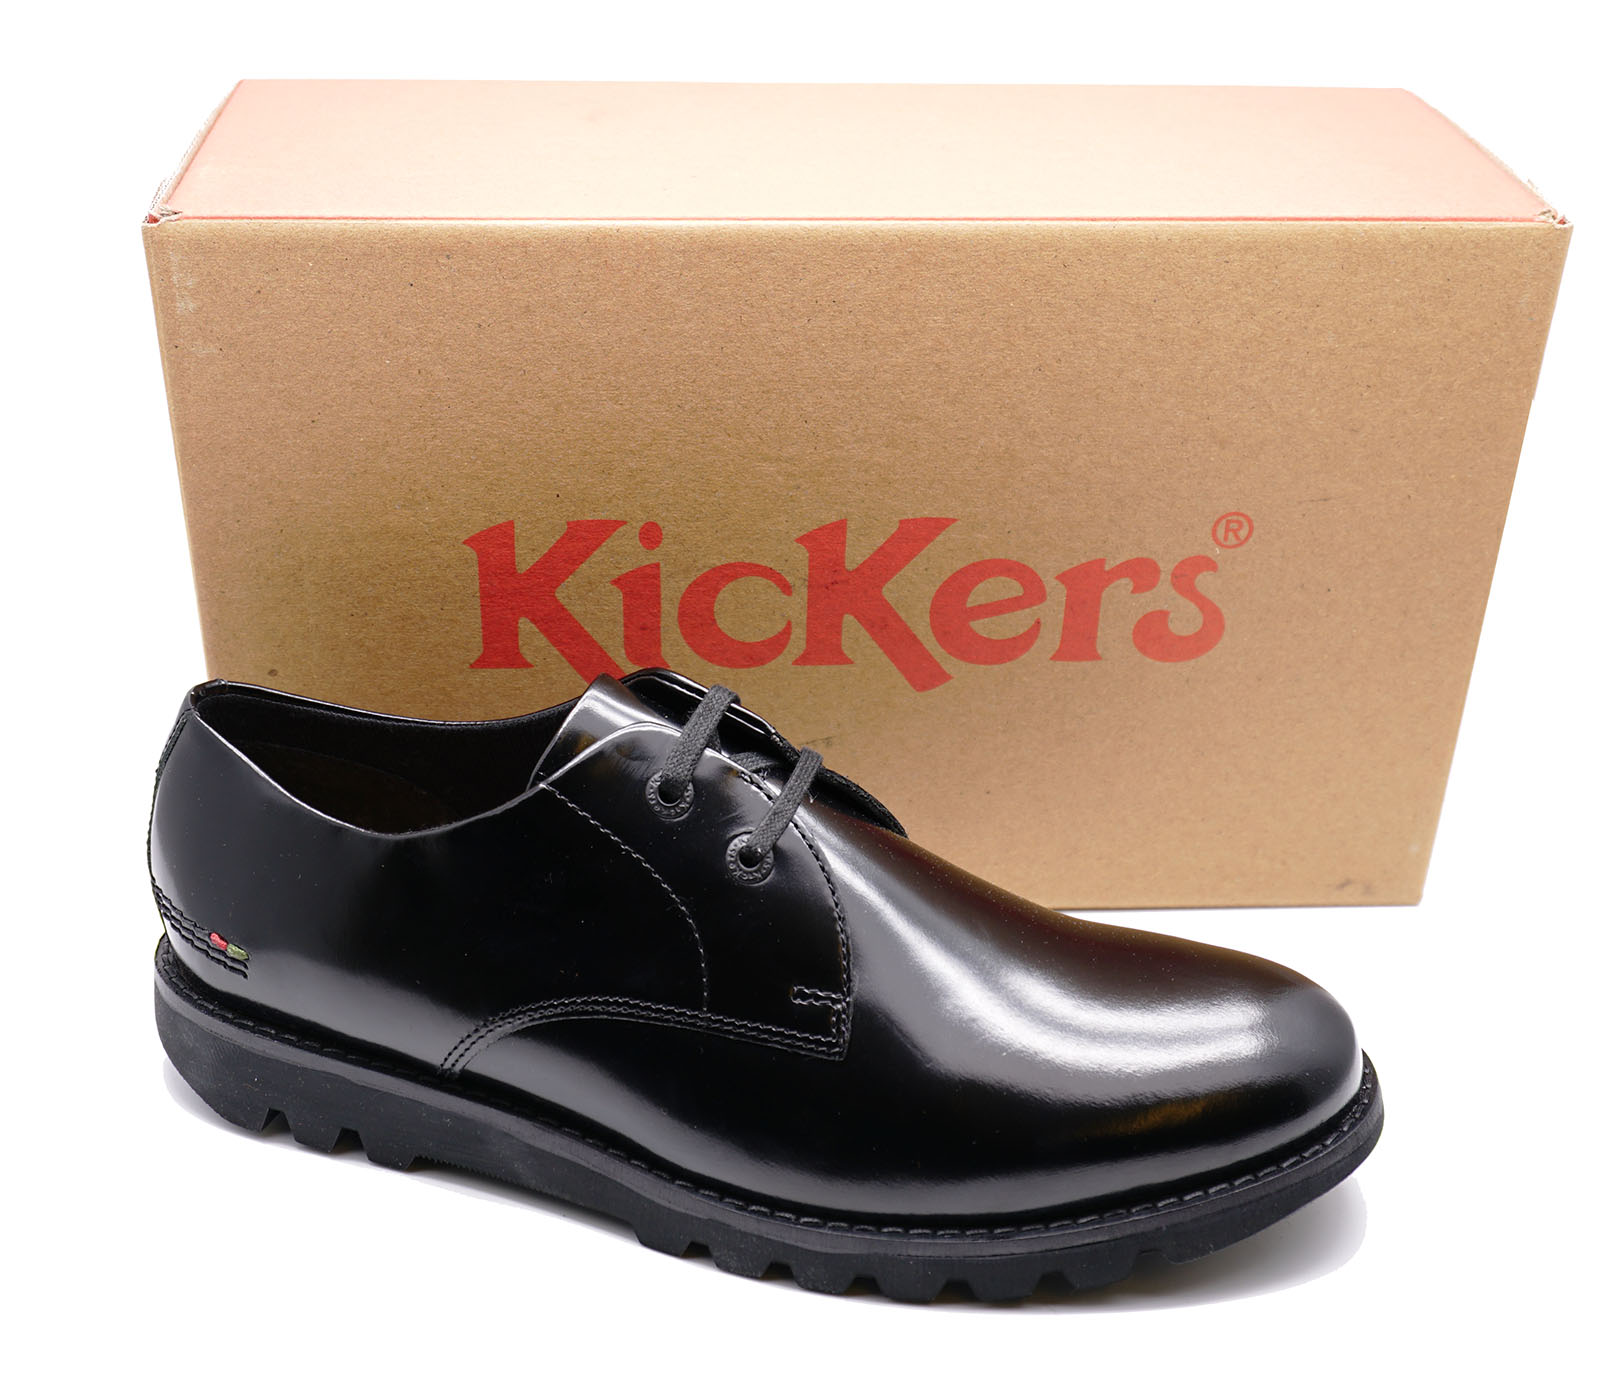 MENS-BLACK-KICKERS-KYMBO-LACE-UP-HI-SHINE-LEATHER-SMART-DERBY-SHOES-SIZES-40-46 thumbnail 10